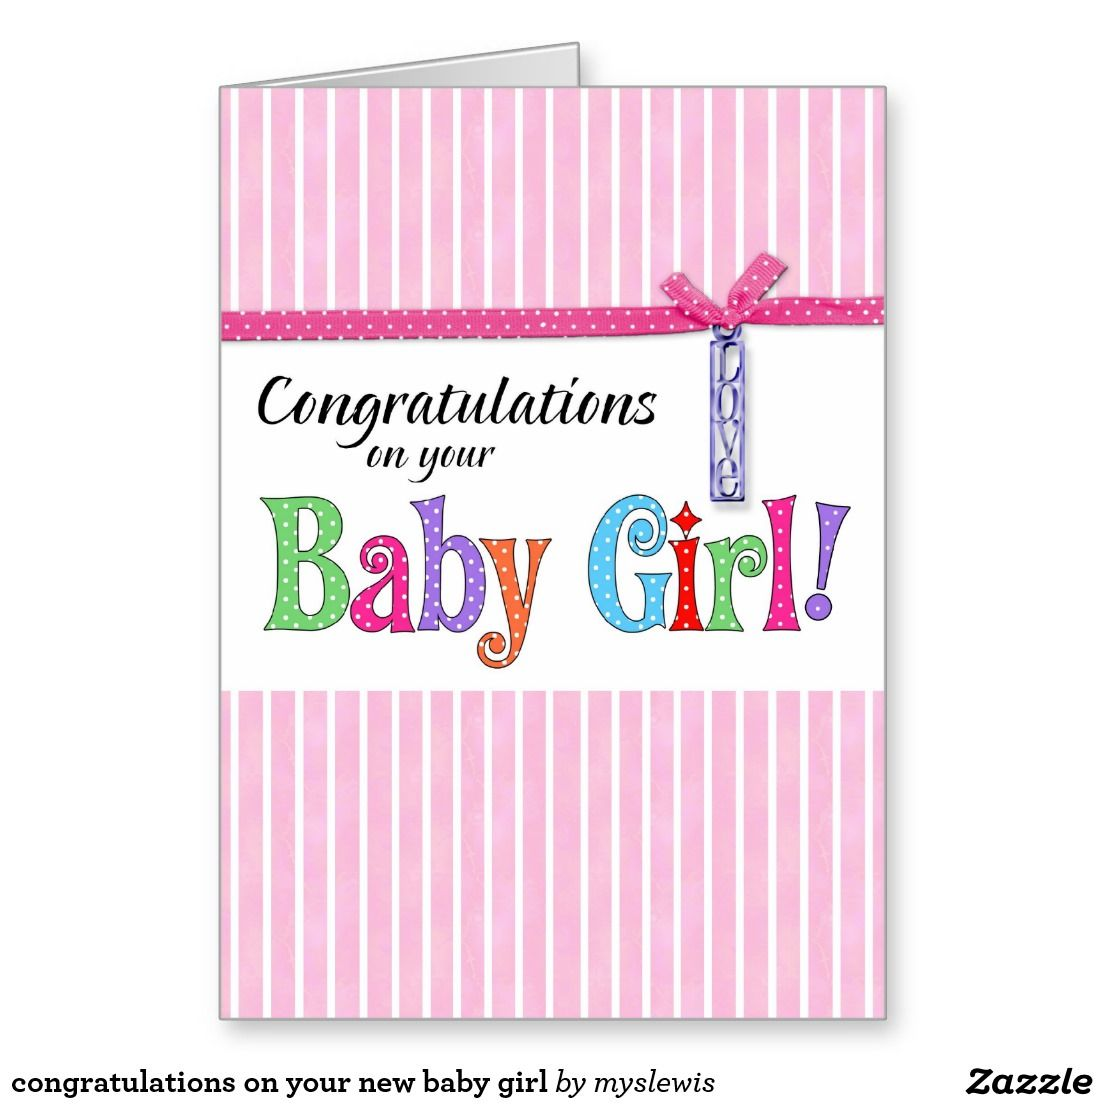 Congratulations on your new baby girl greeting card sold to congratulations on your new baby girl greeting card sold to michael in california united states kristyandbryce Images